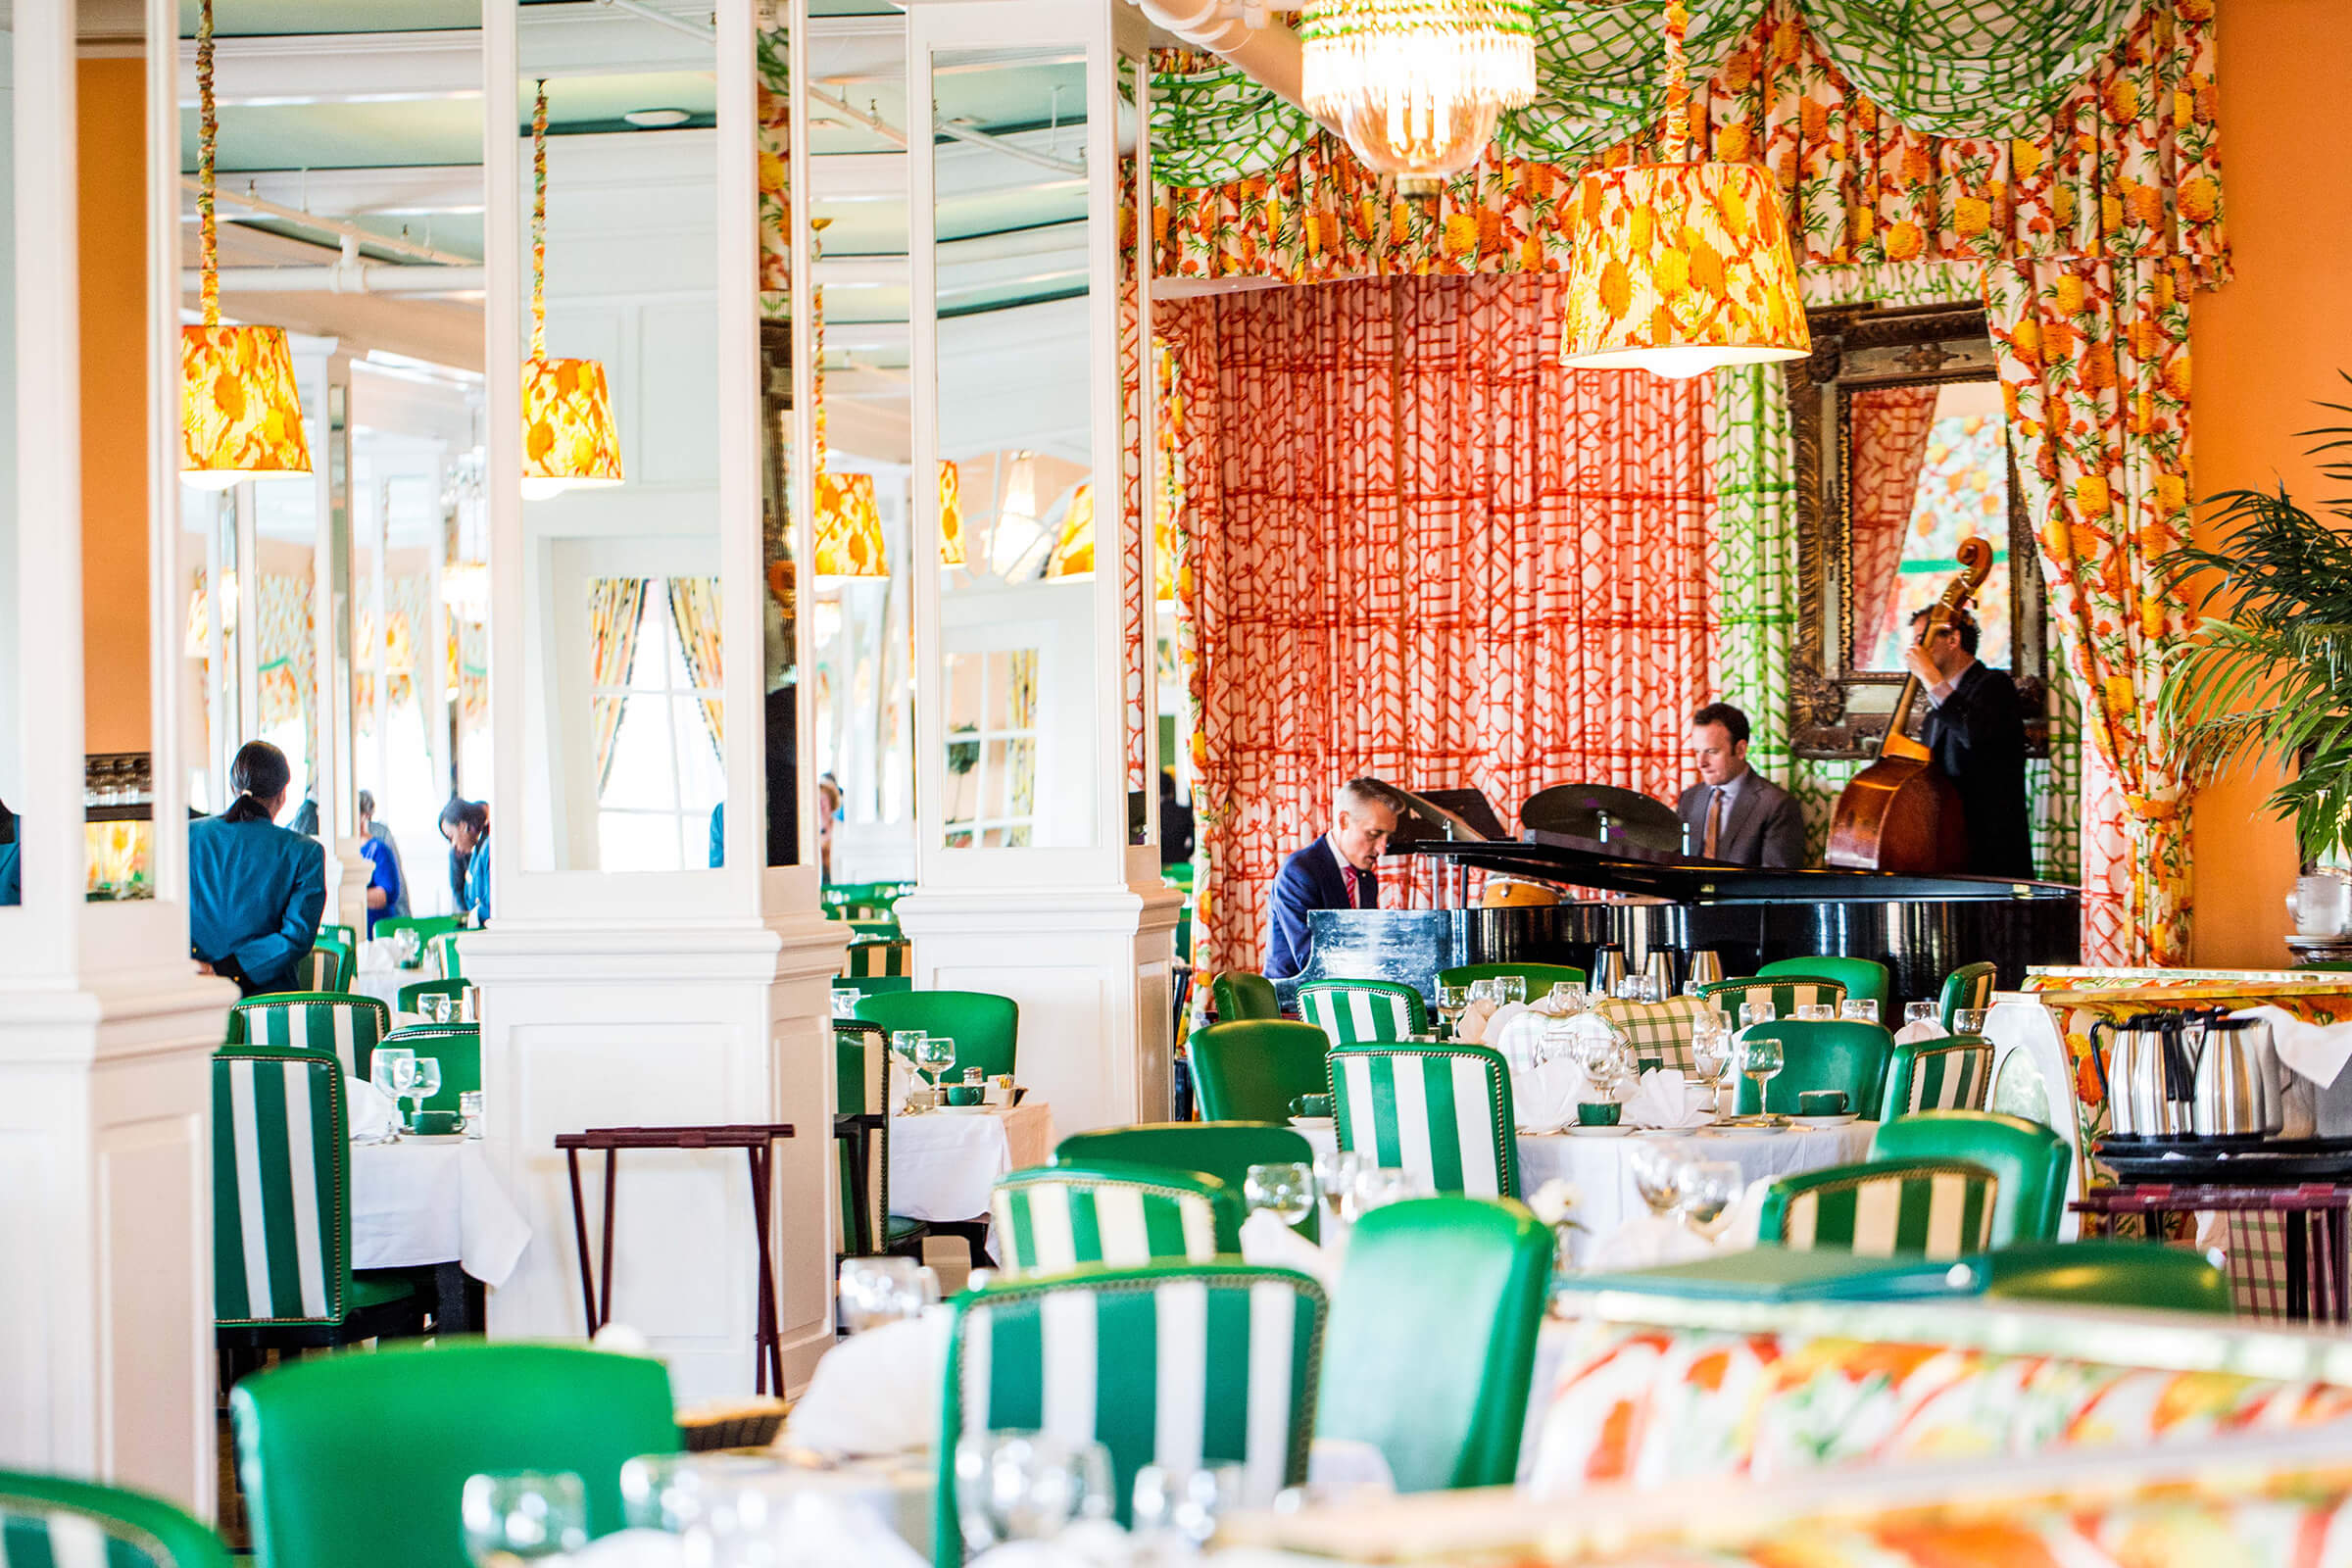 Main dining room with live music